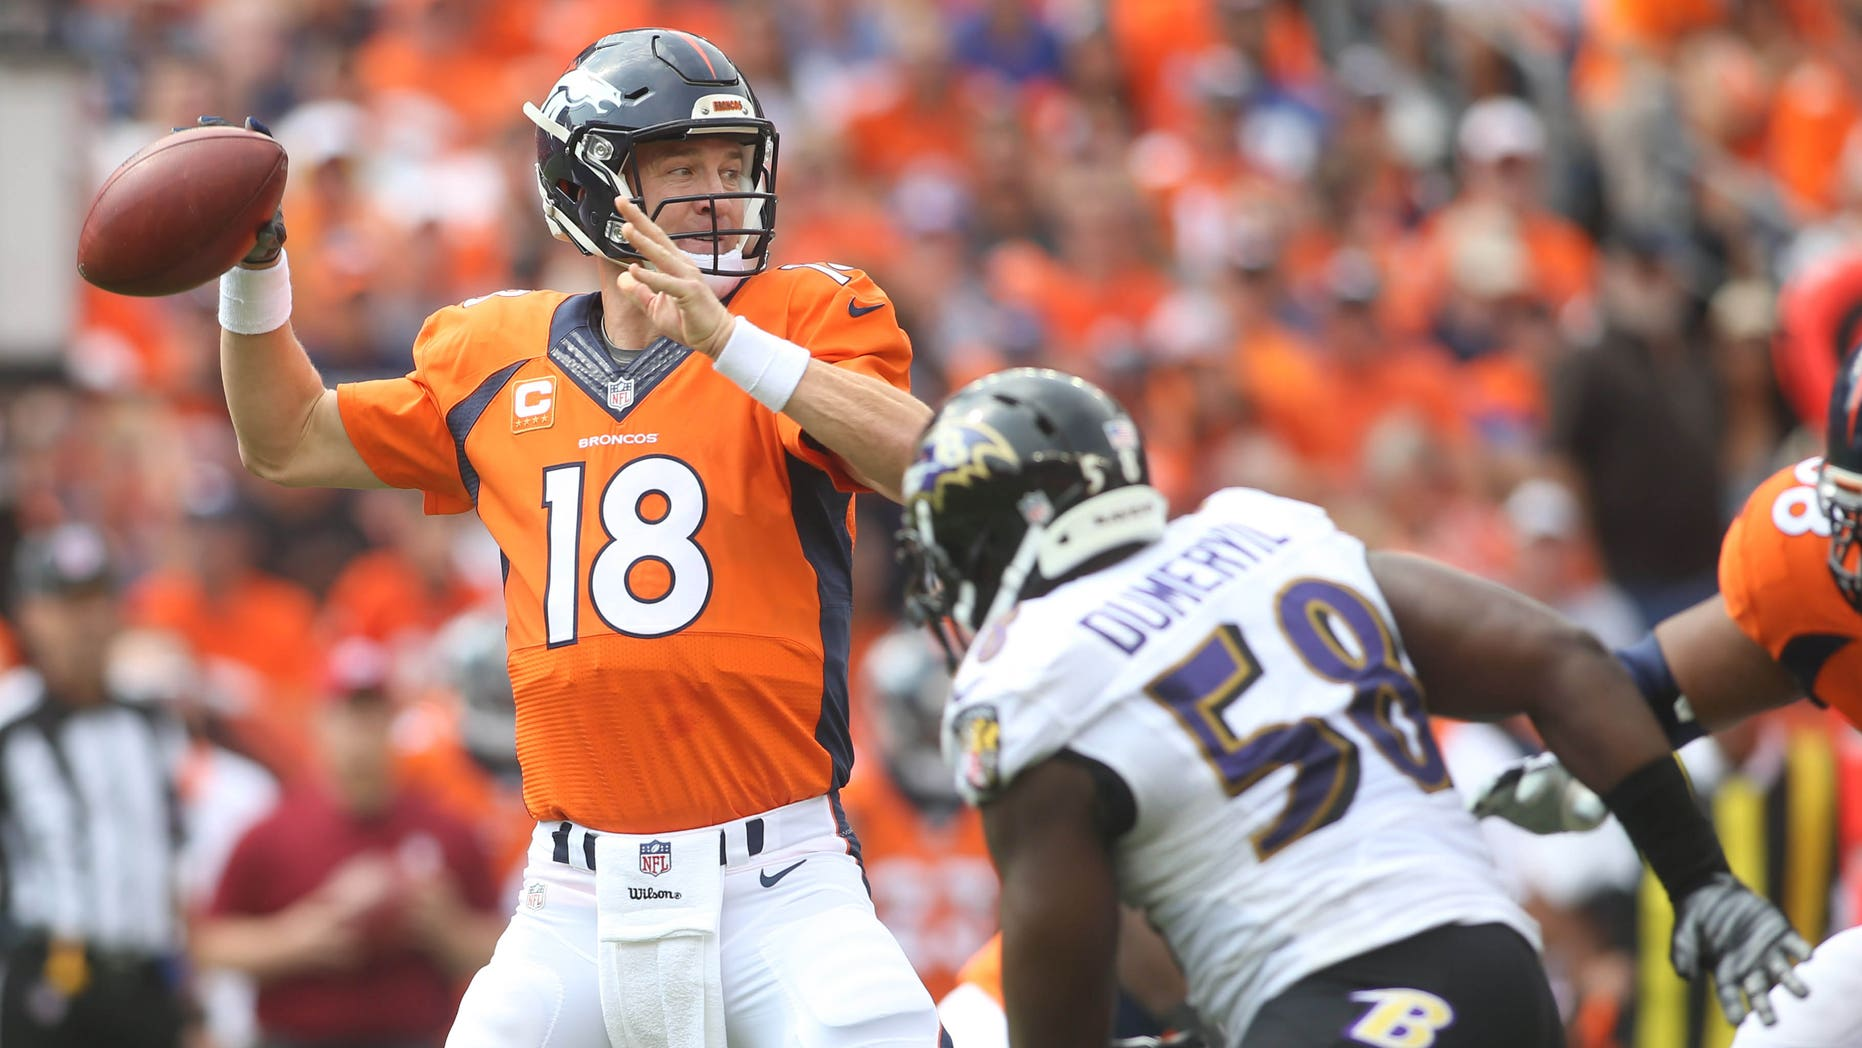 Sep 13, 2015; Denver, CO, USA; Denver Broncos quarterback Peyton Manning (18) throws the ball during the first half against the Baltimore Ravens at Sports Authority Field at Mile High. Mandatory Credit: Chris Humphreys-USA TODAY Sports